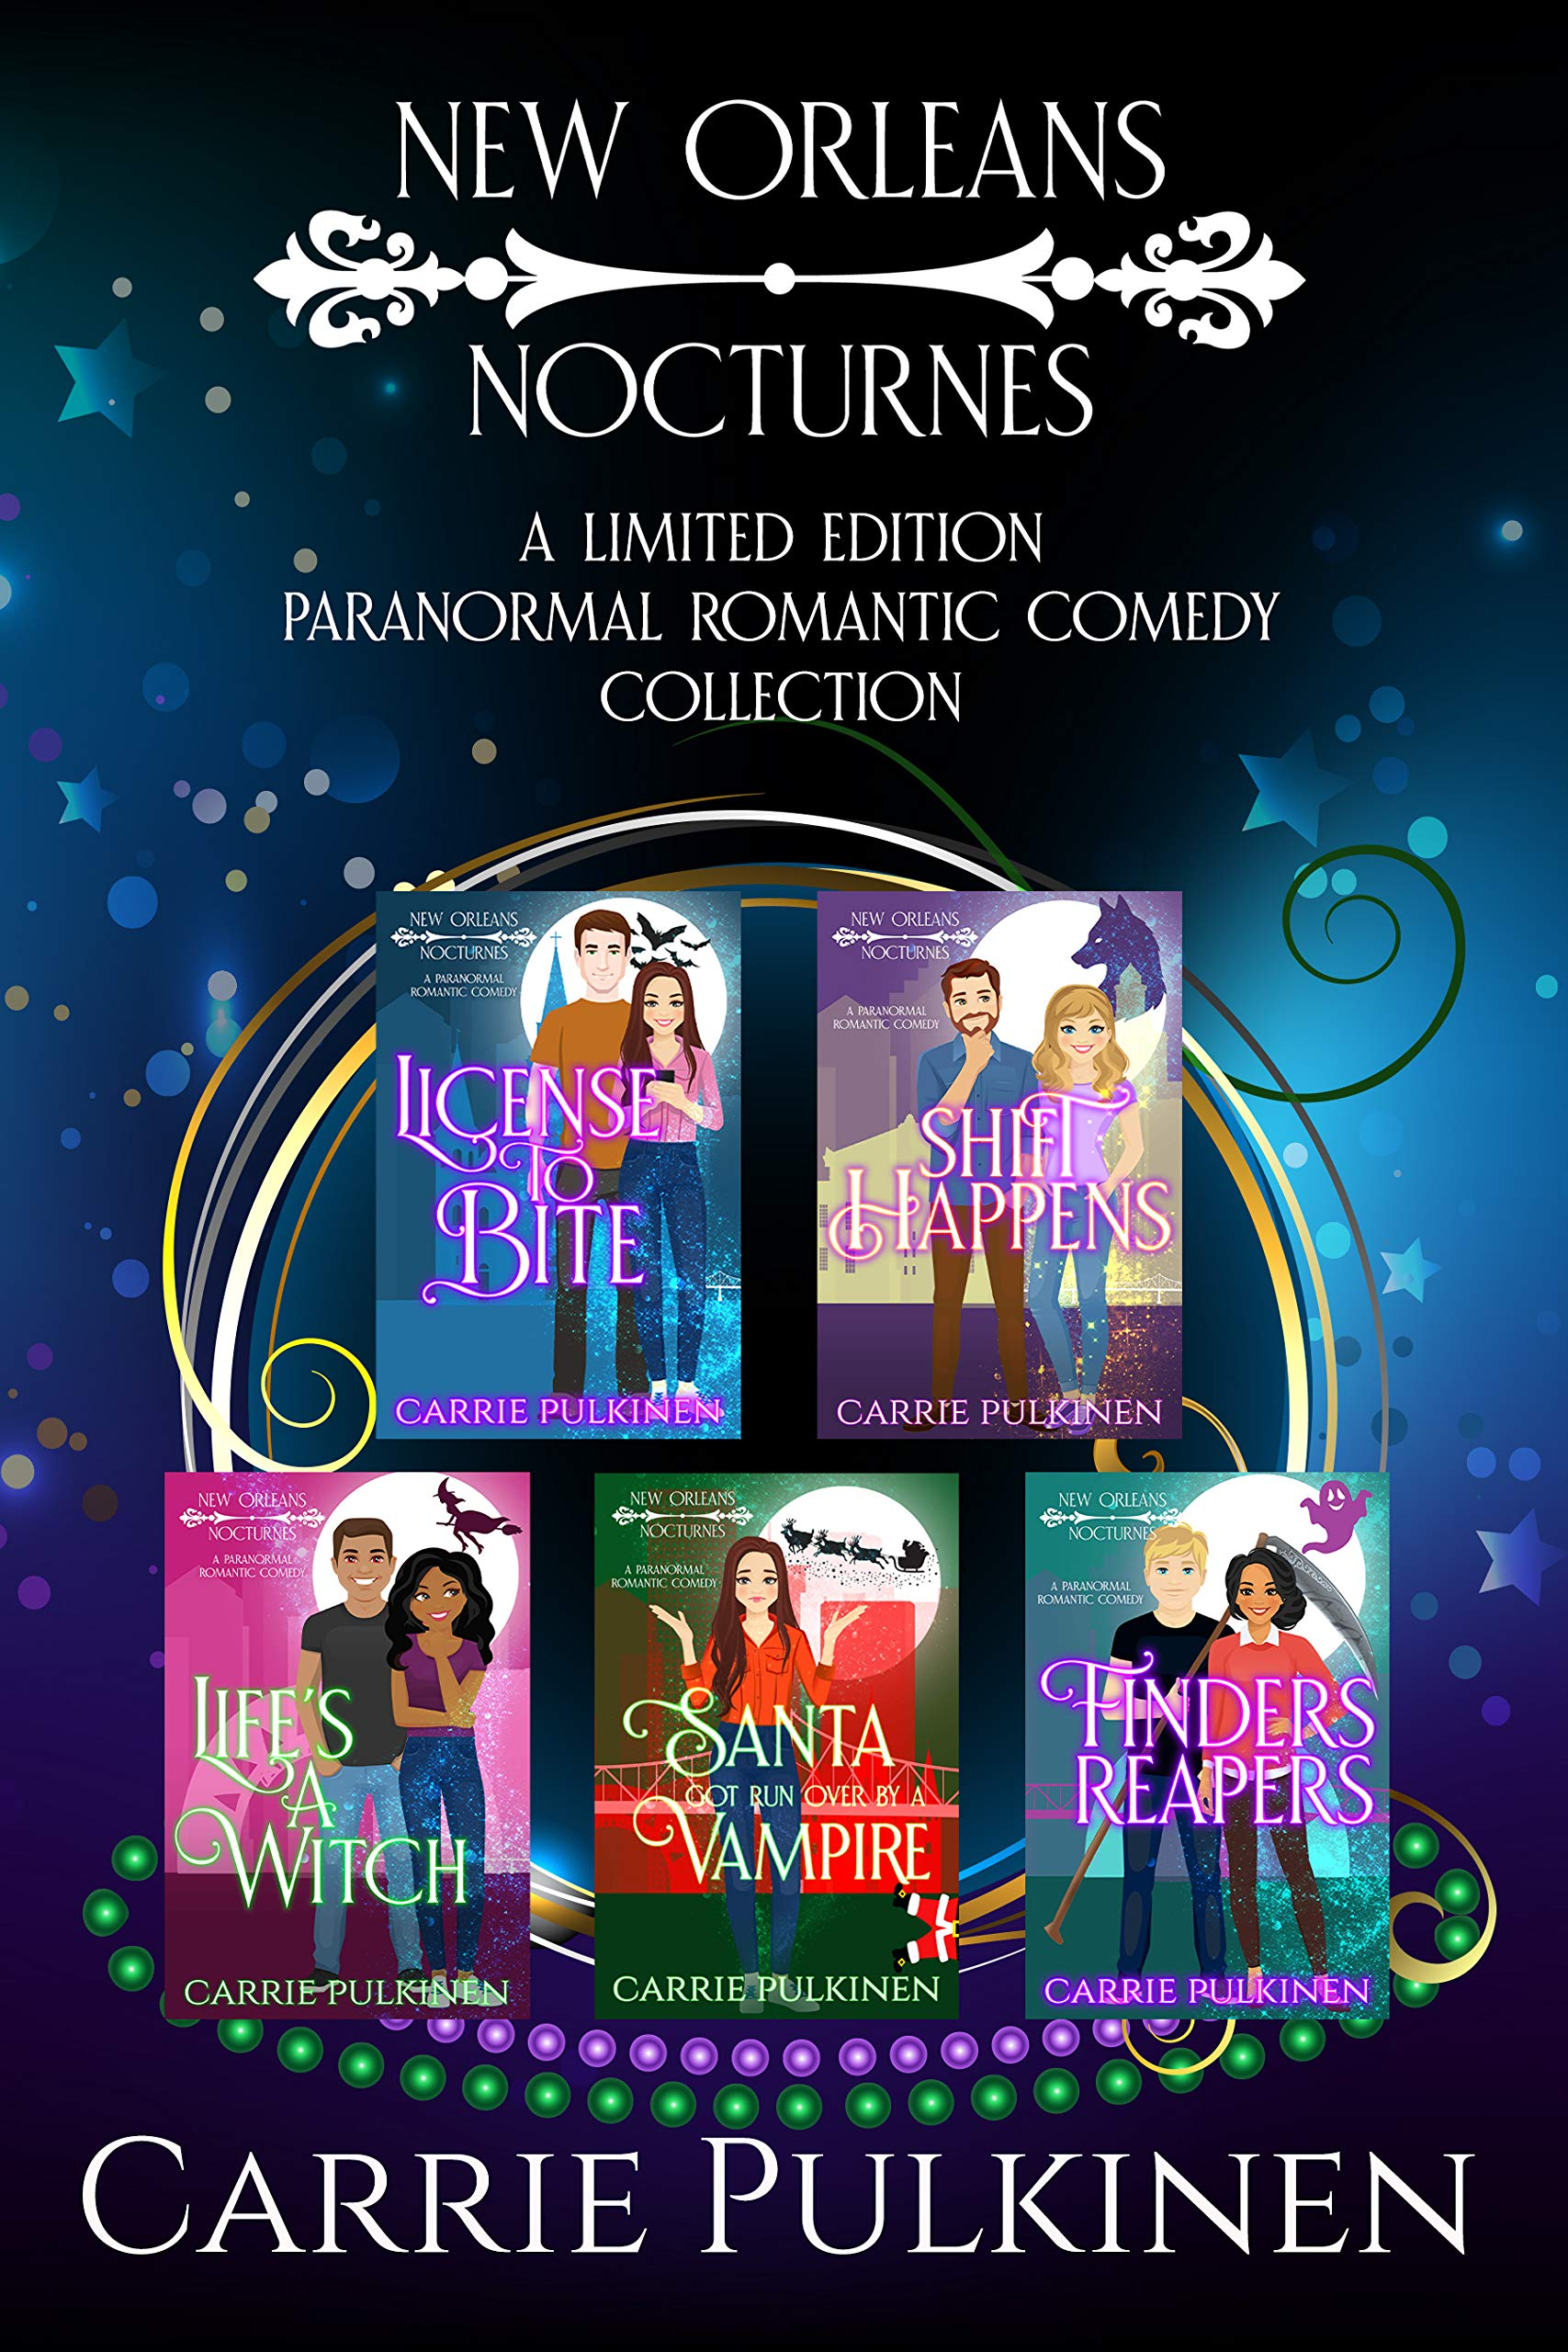 New Orleans Nocturnes: A Limited Edition Paranormal Romantic Comedy Collection